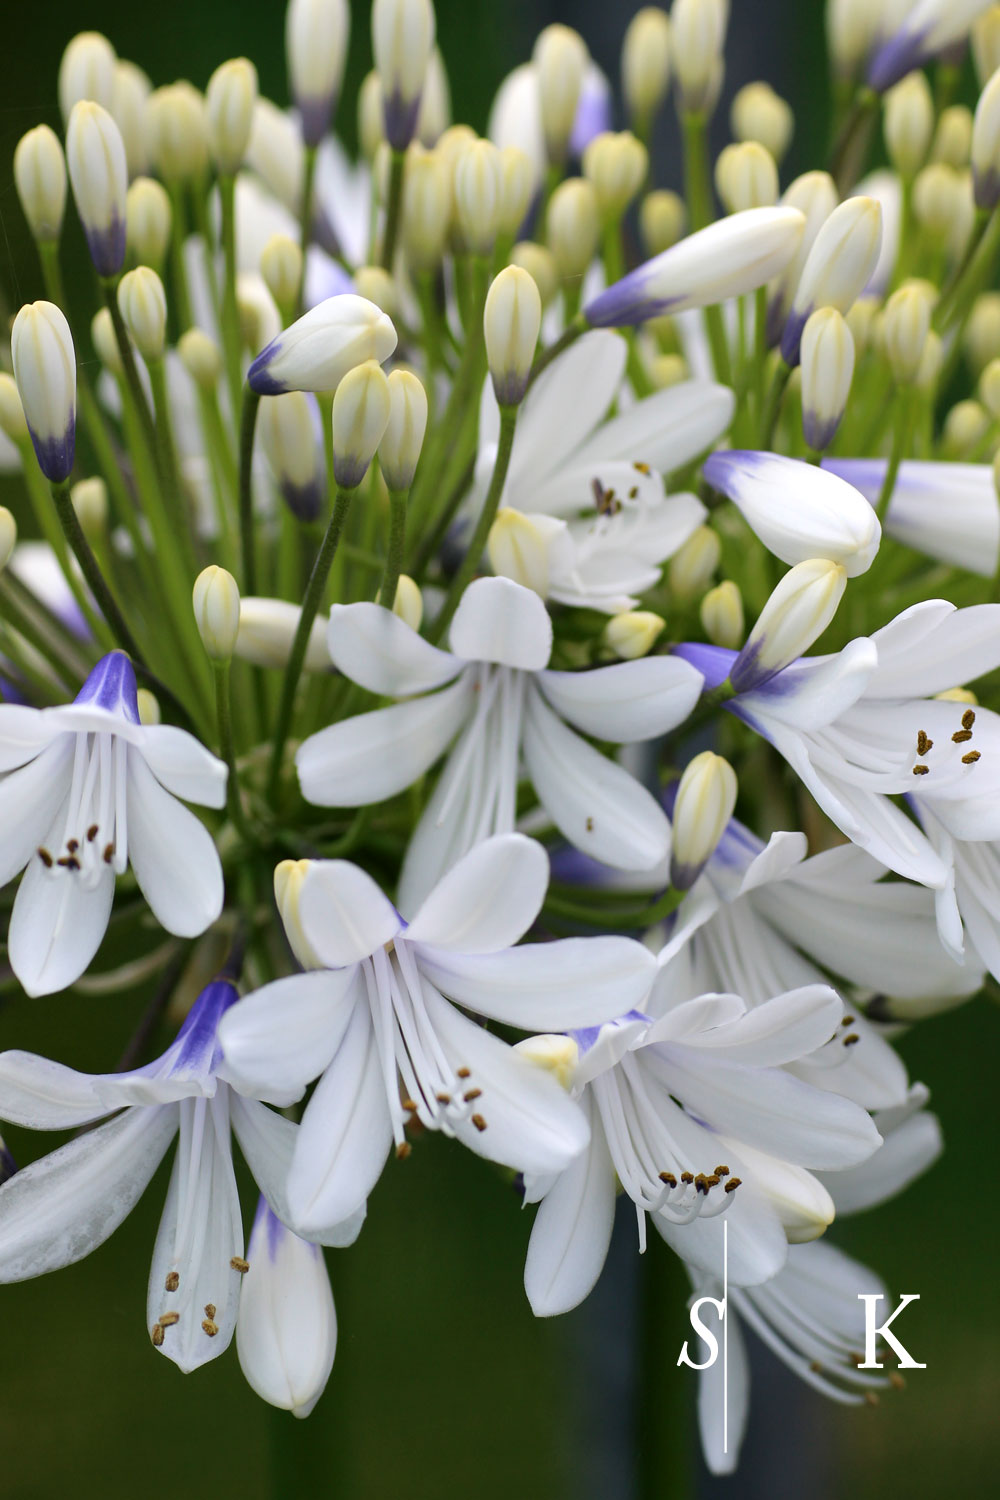 Agapanthus Queen Mum in Flower and Bud